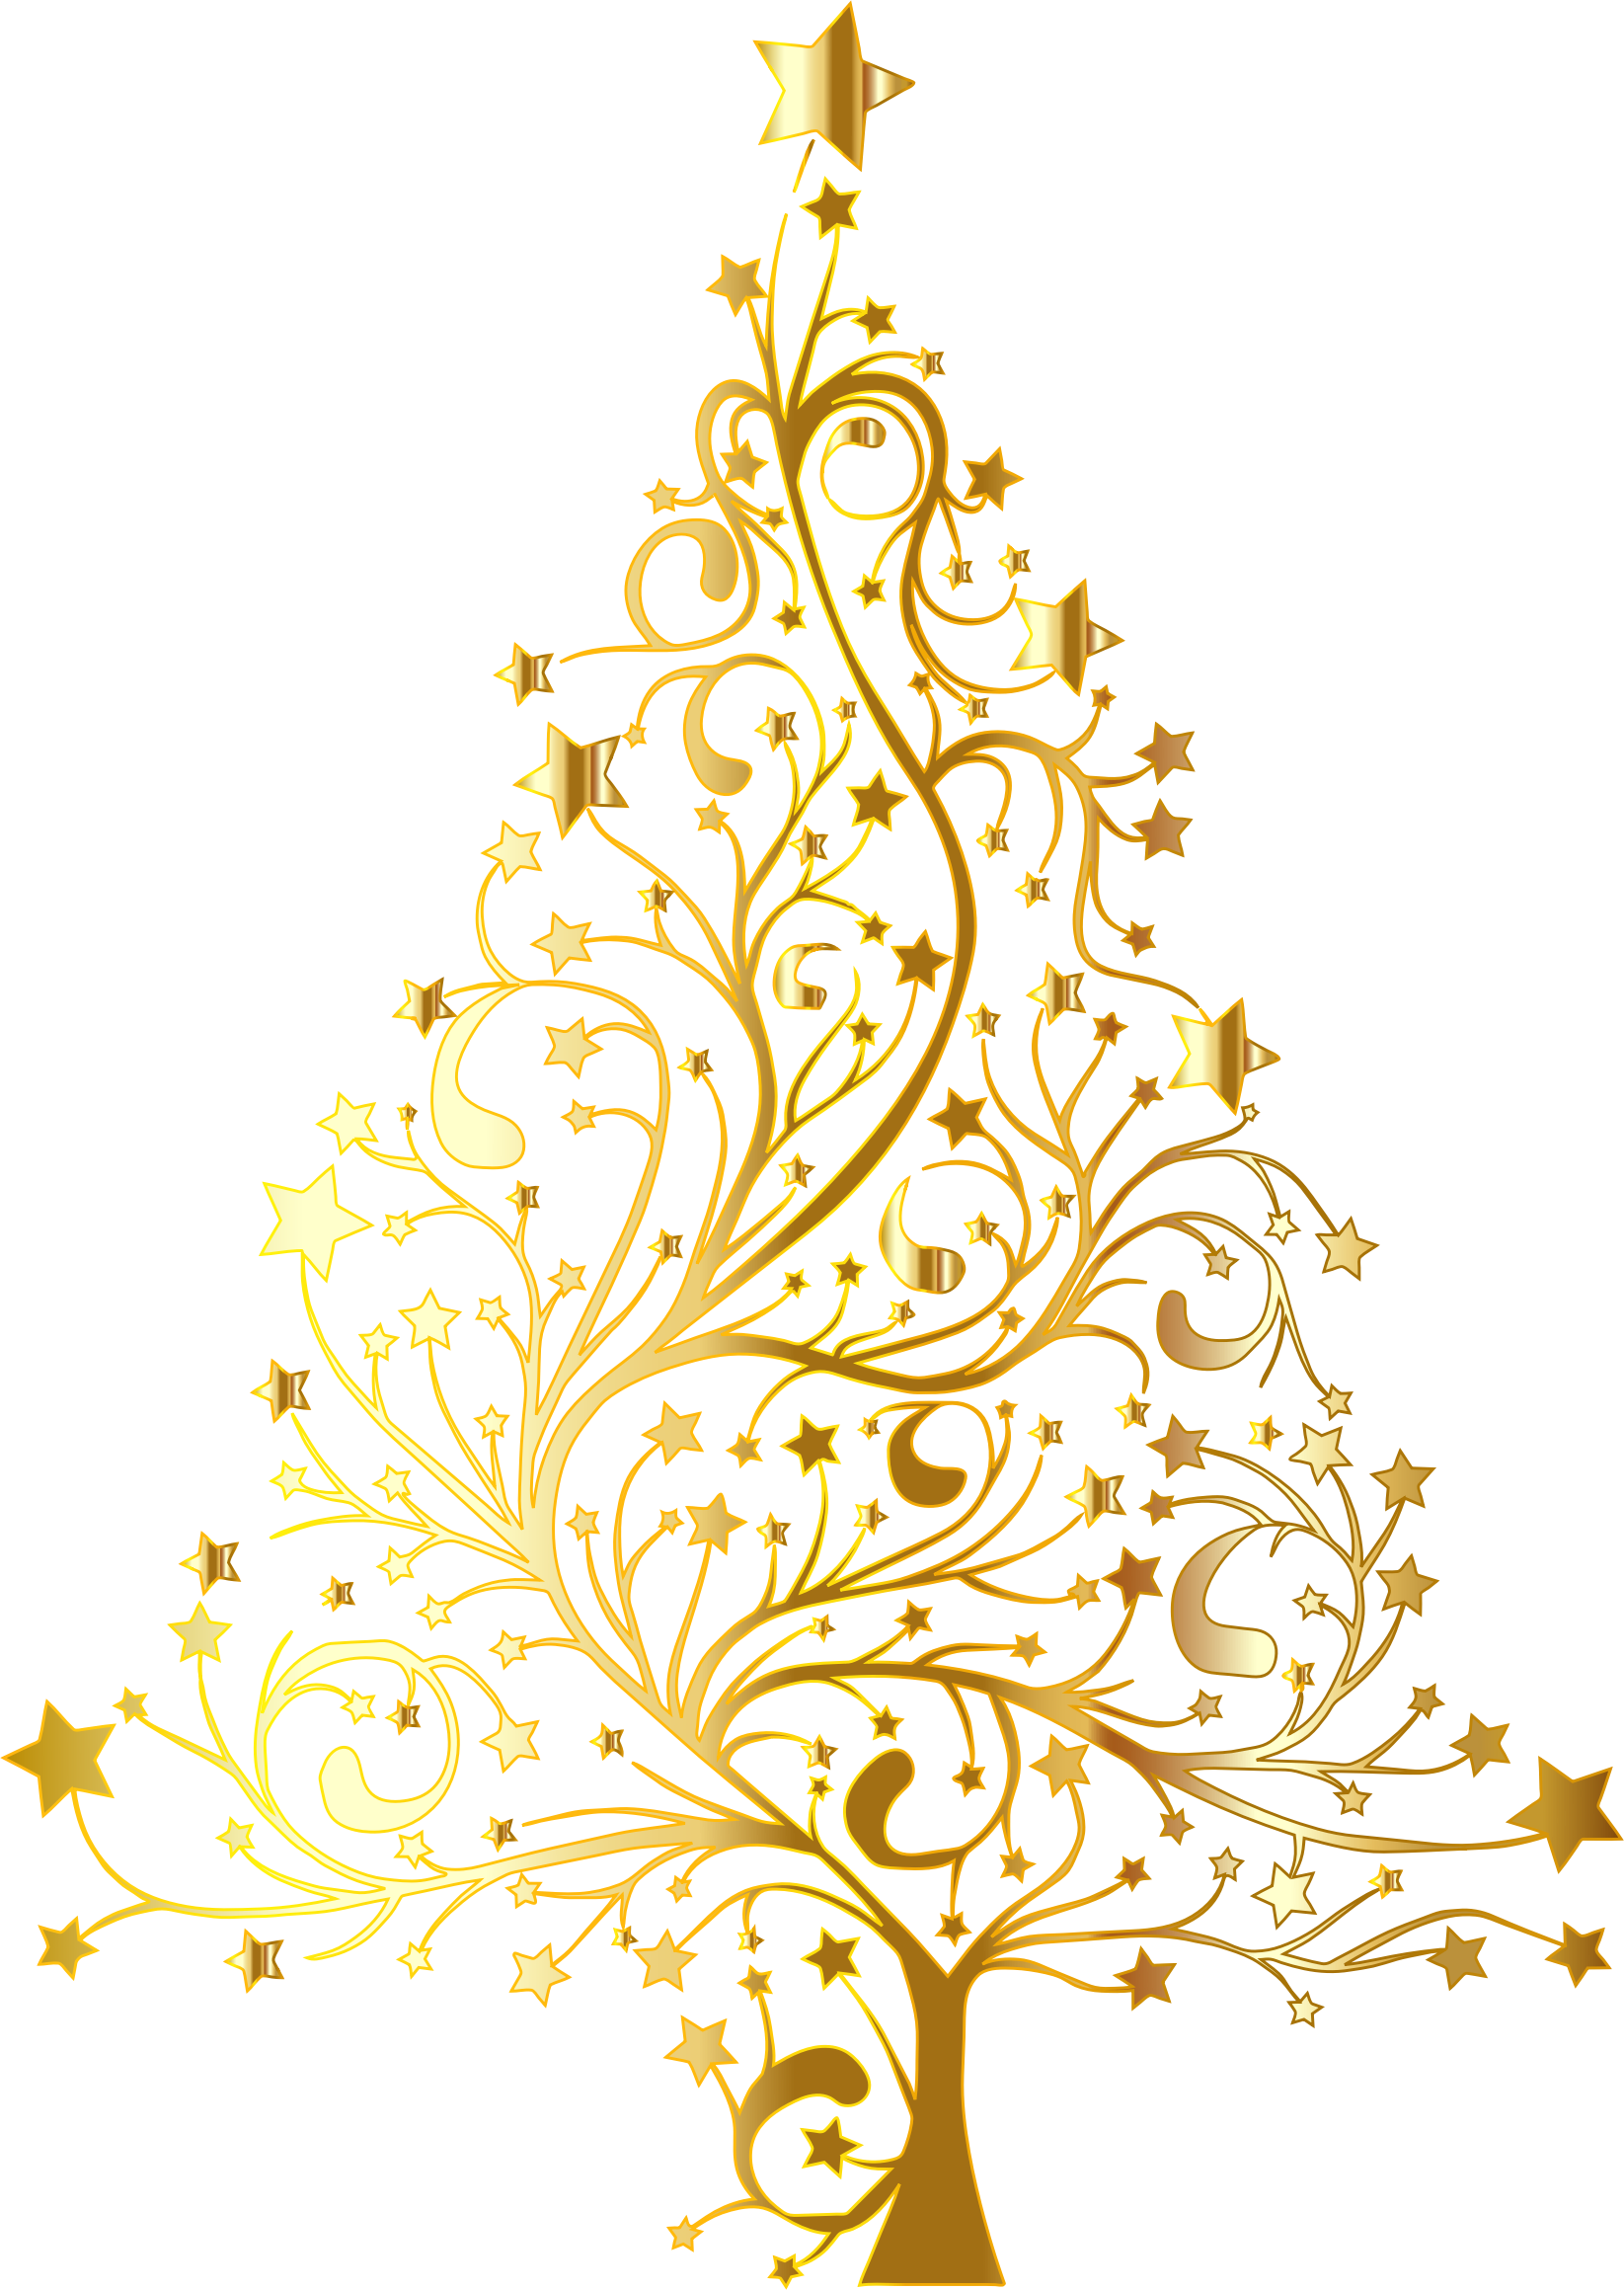 Christmas gold tree clipart transparent background.